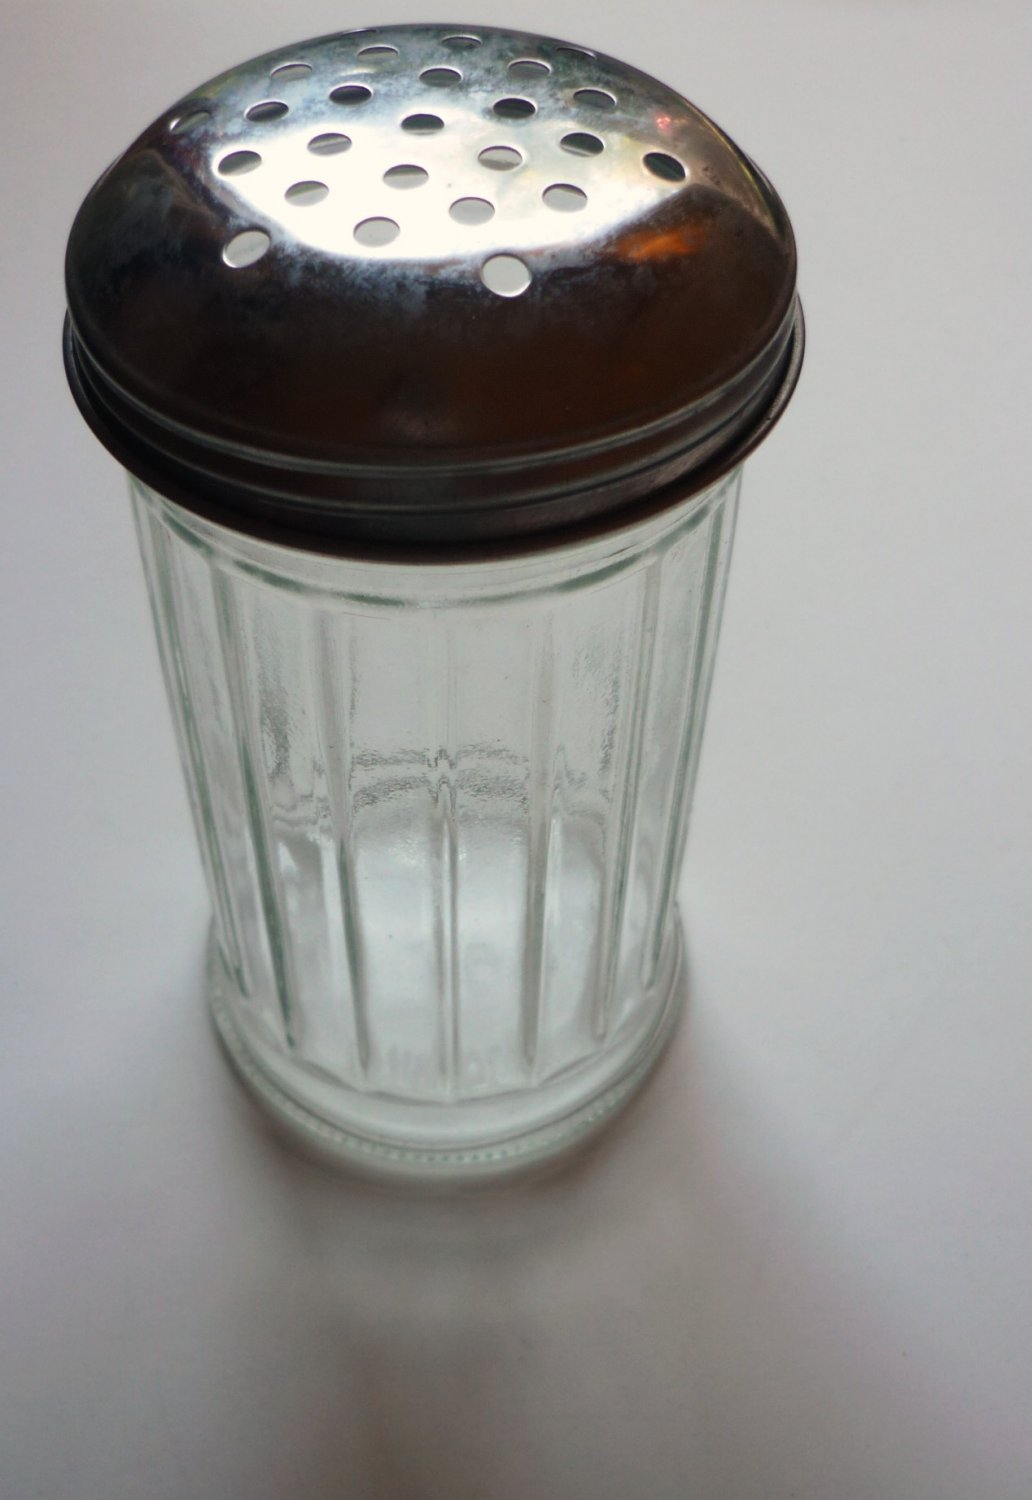 Halco Cheese or Spice Shaker Glass with Metal Cap - USA